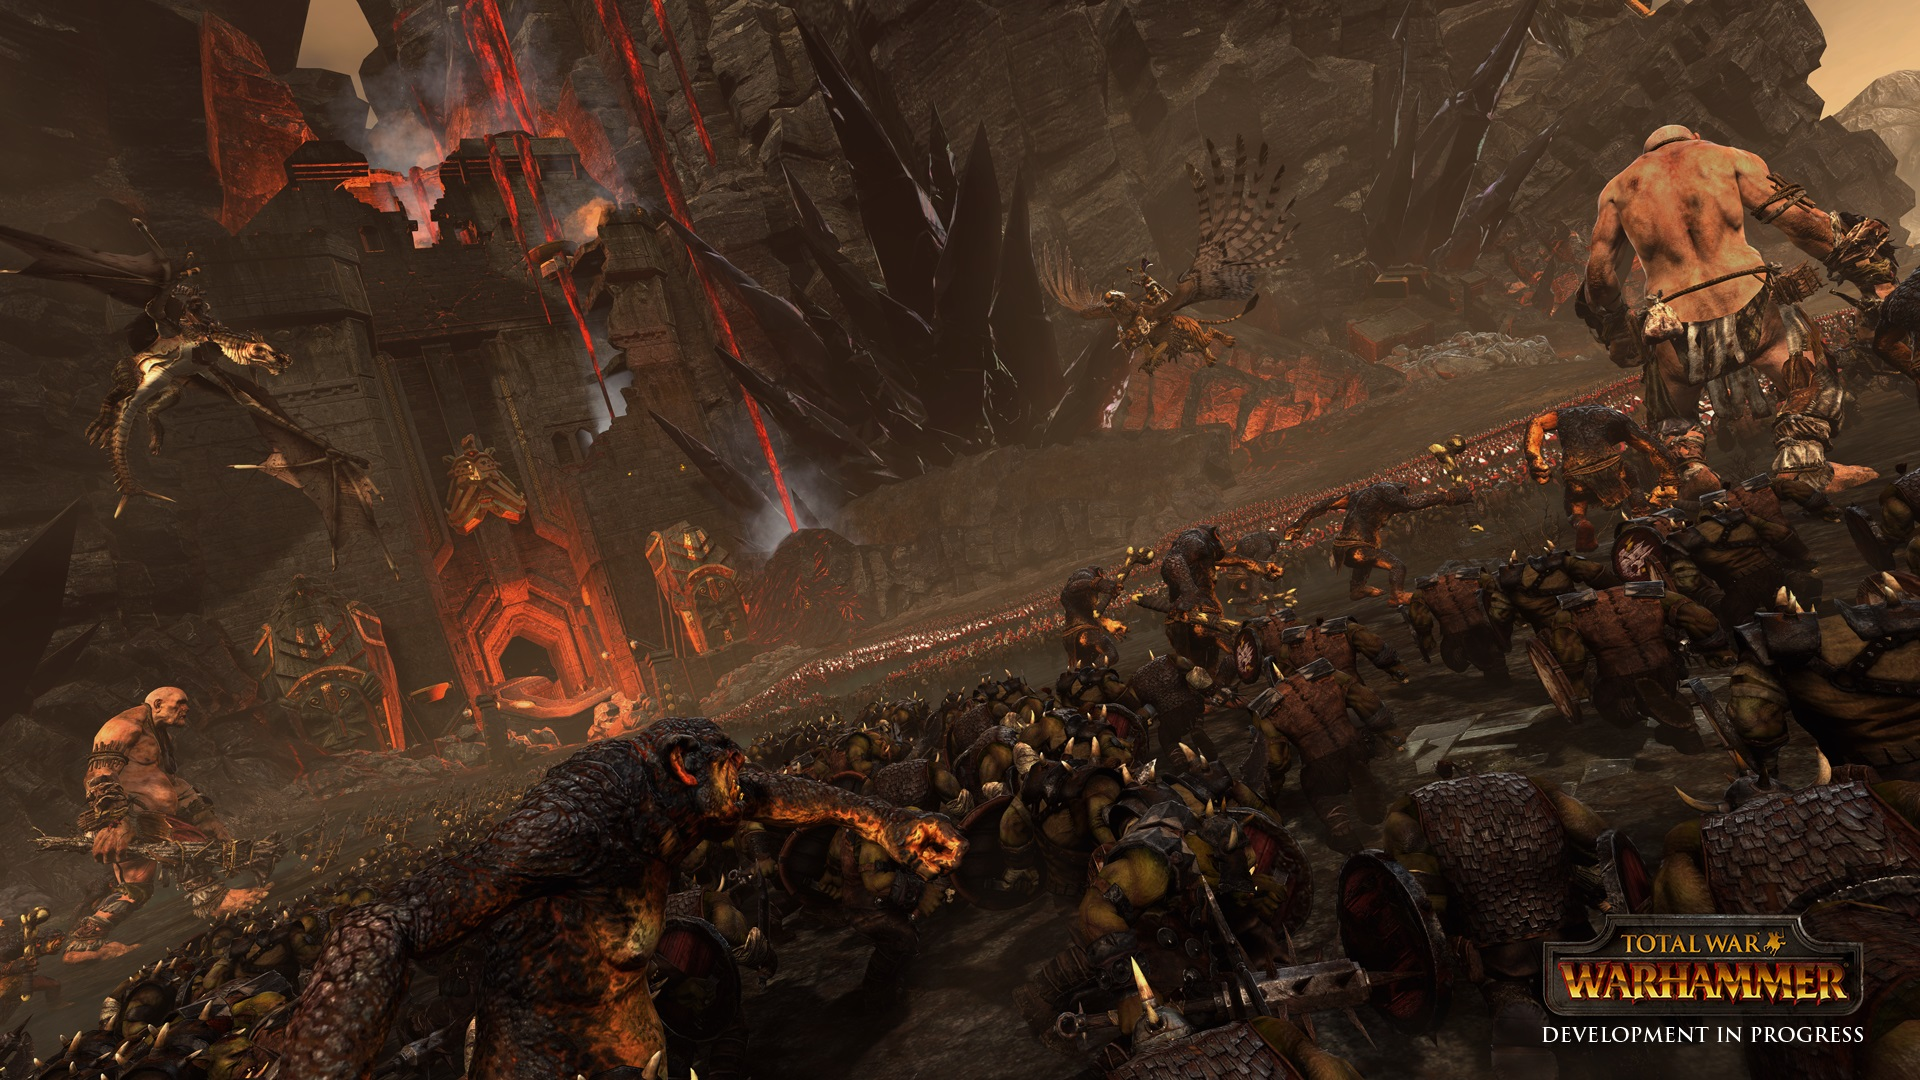 Total War: Warhammer widescreen wallpapers